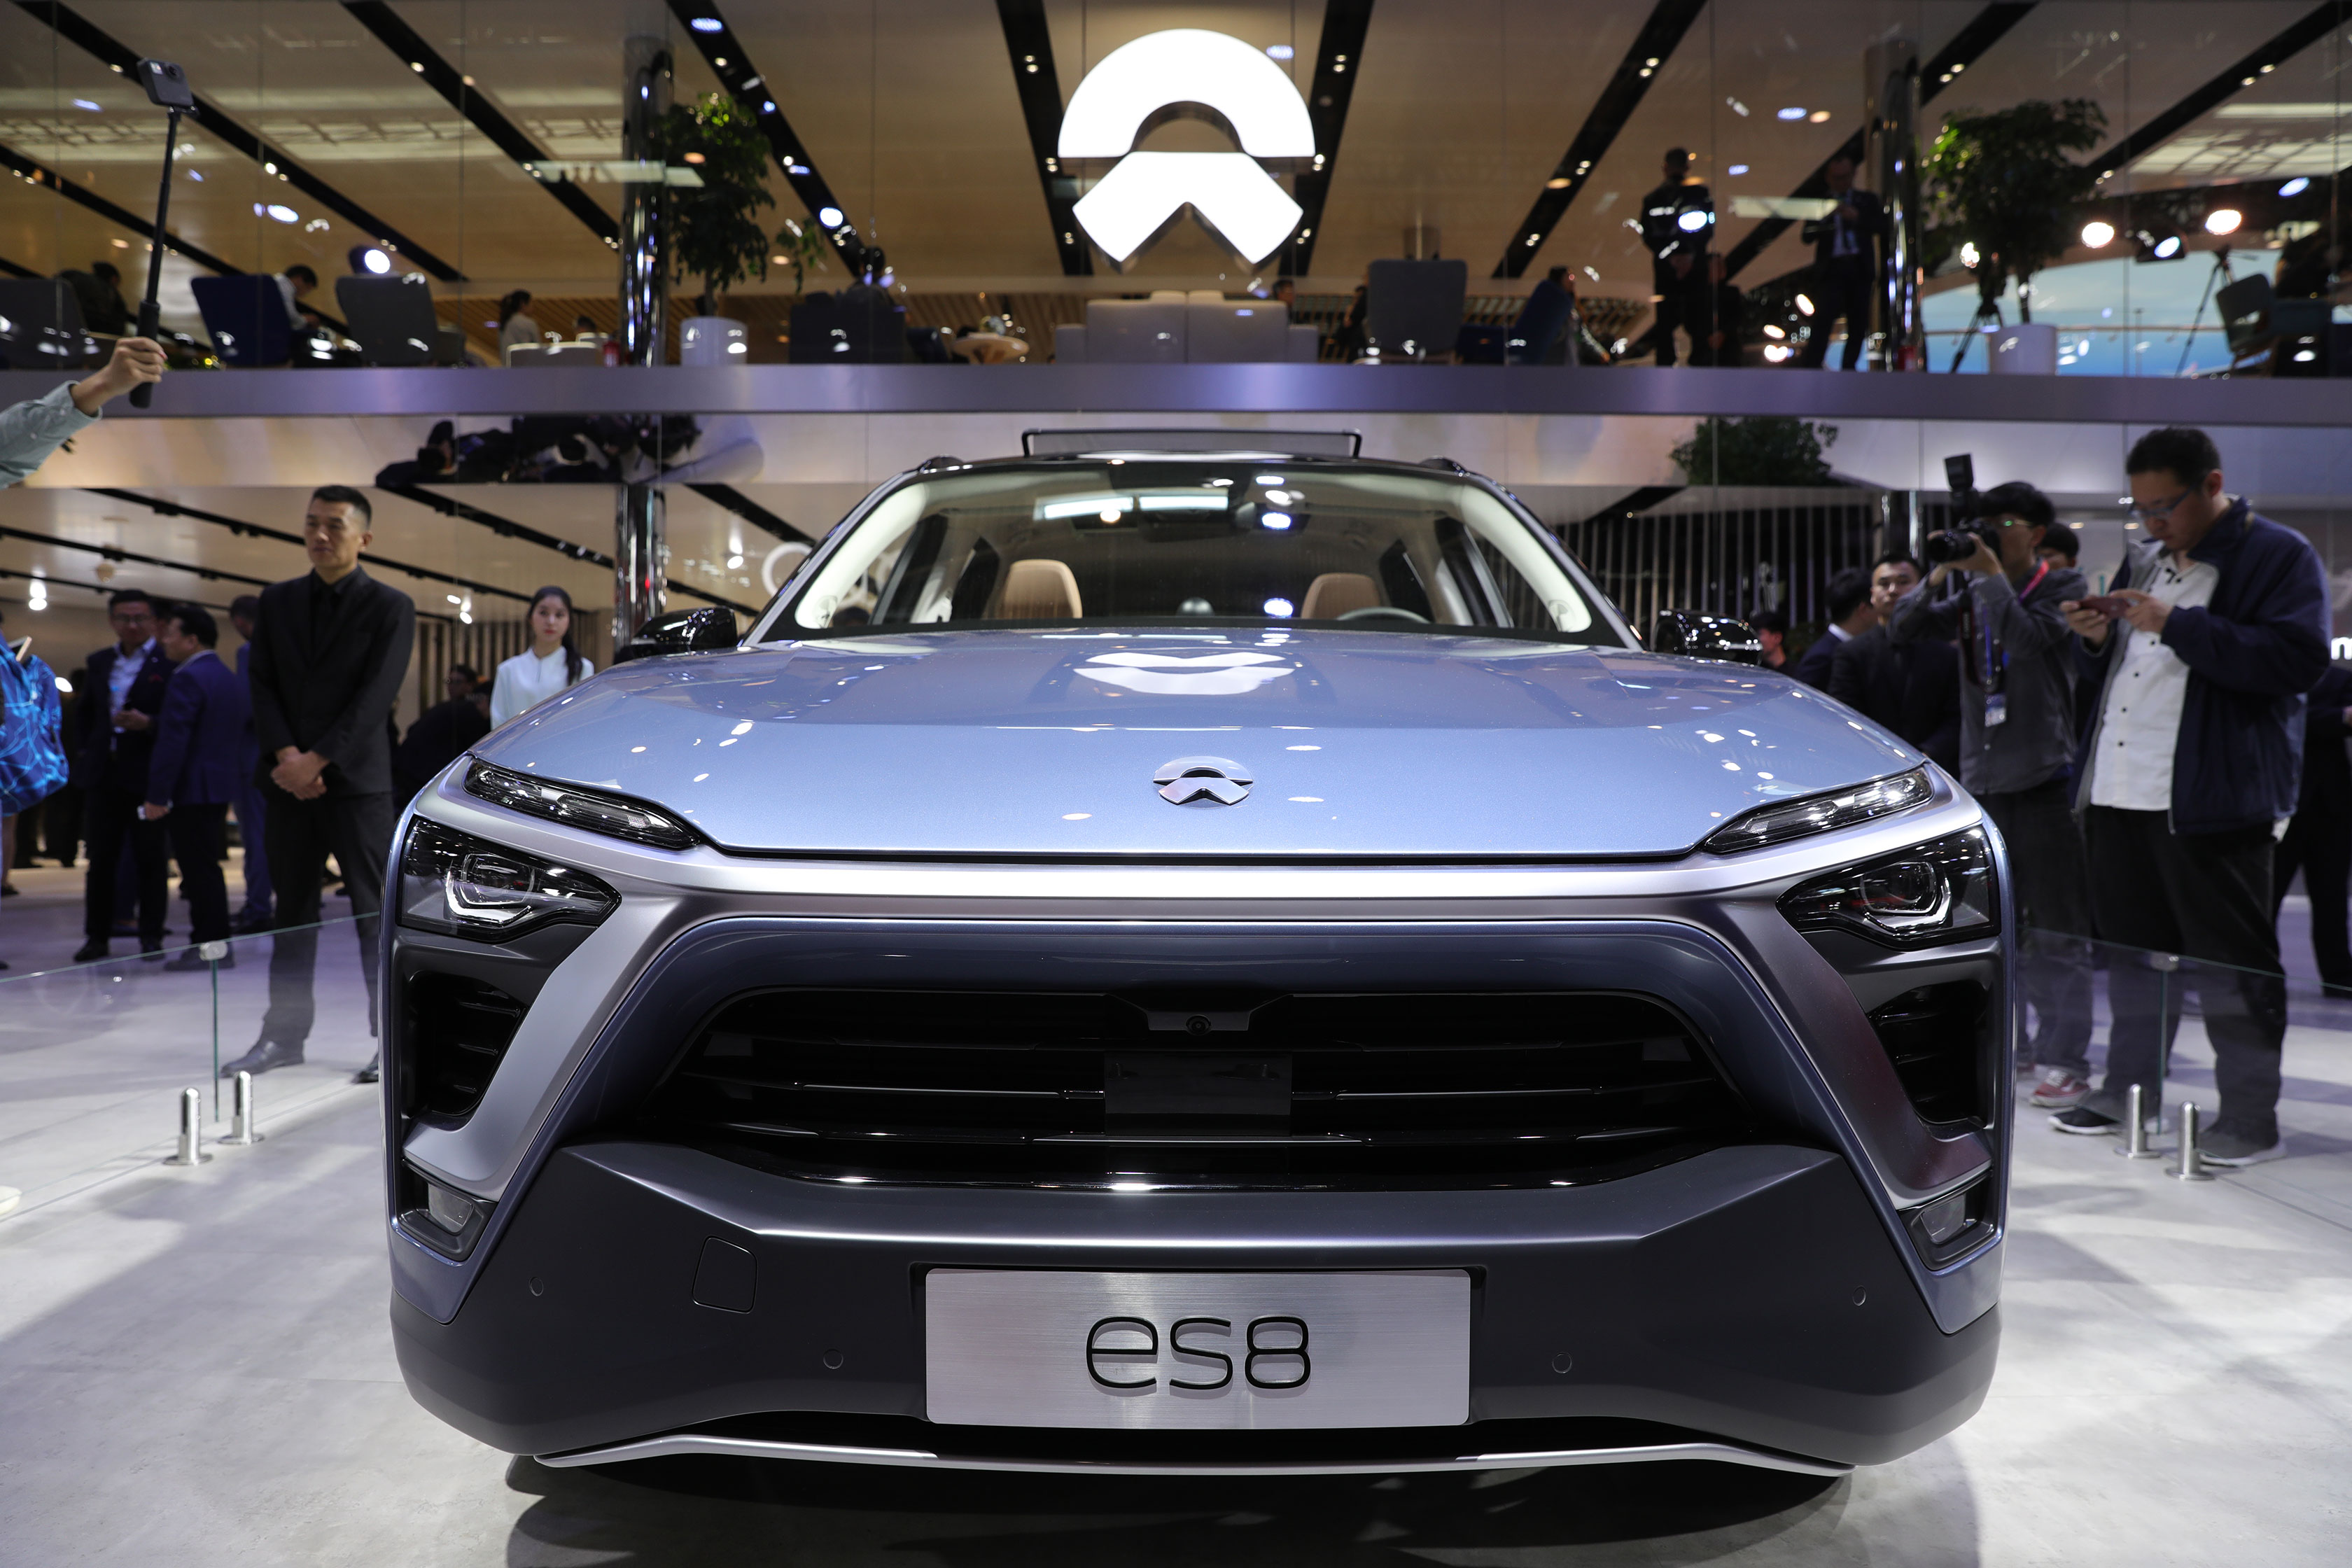 After Several Disappointing Quarters Chinese Ev Maker Nio S Sales Surge Techcrunch